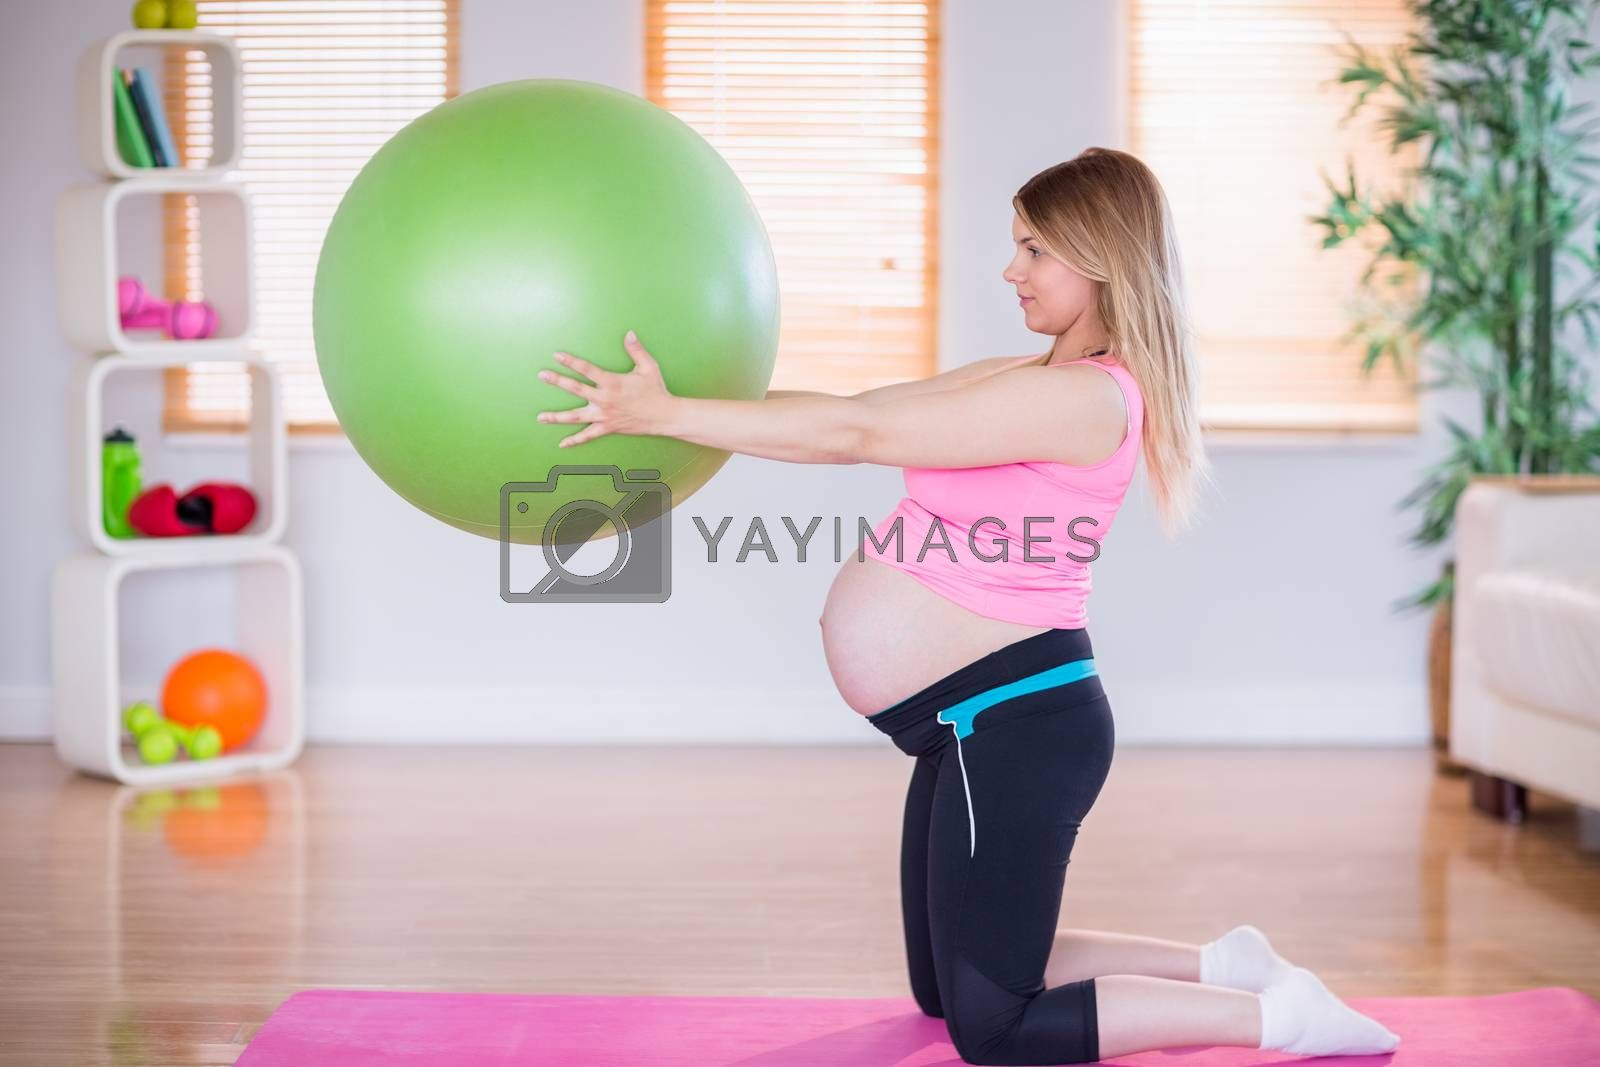 Royalty free image of Pregnant woman holding exercise ball by Wavebreakmedia